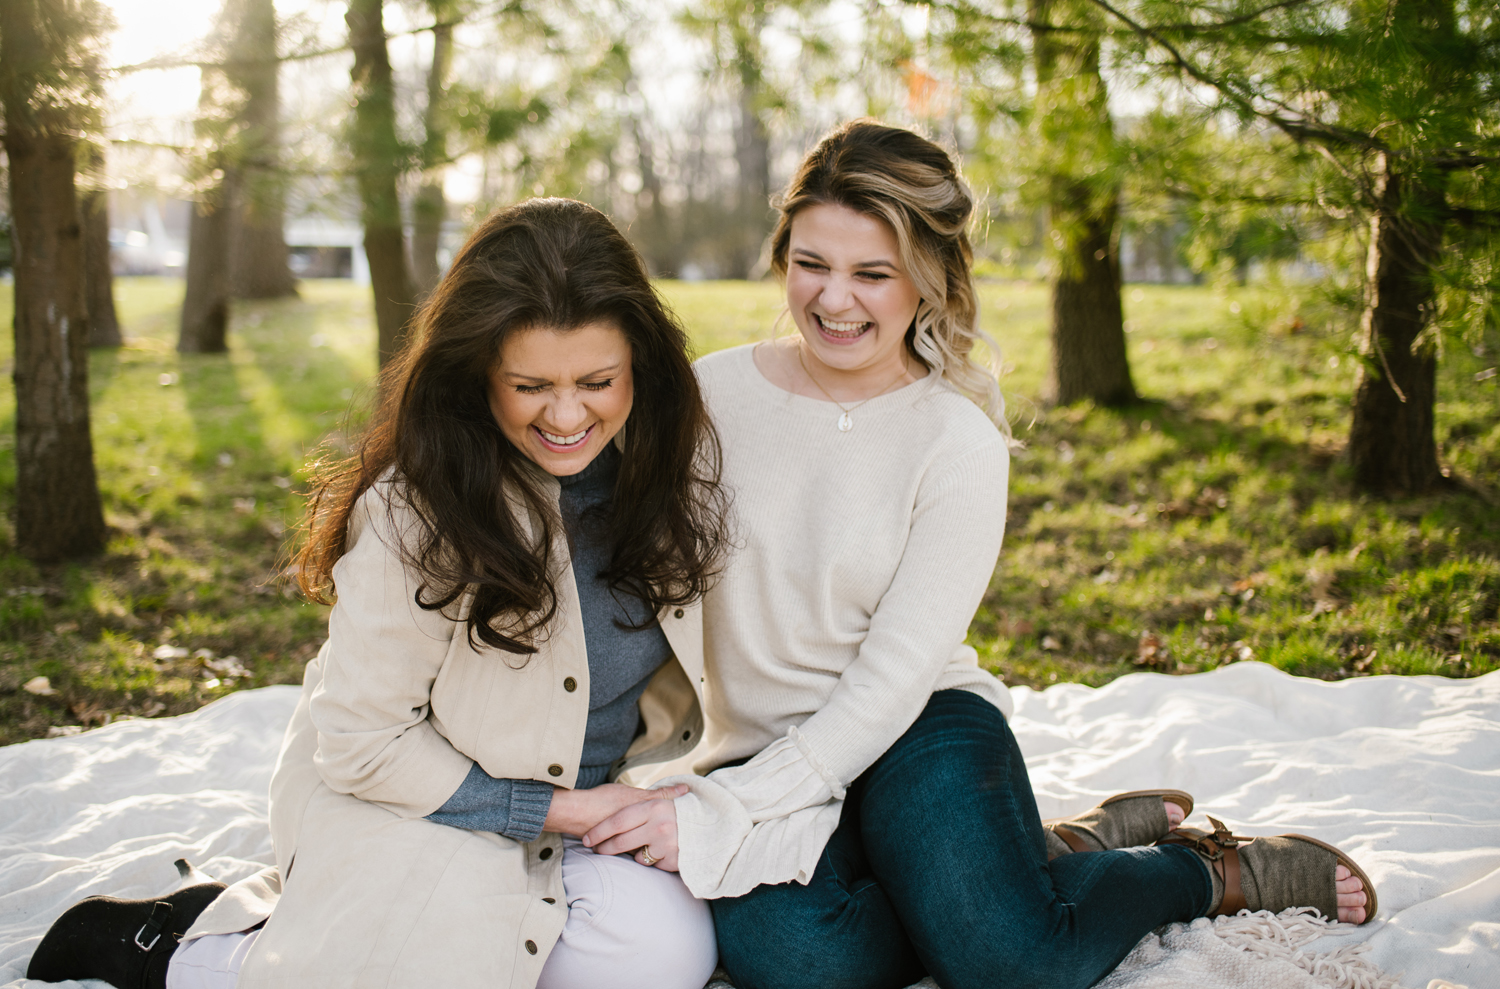 grand-haven-michigan-mothers-day-family-session (96).jpg